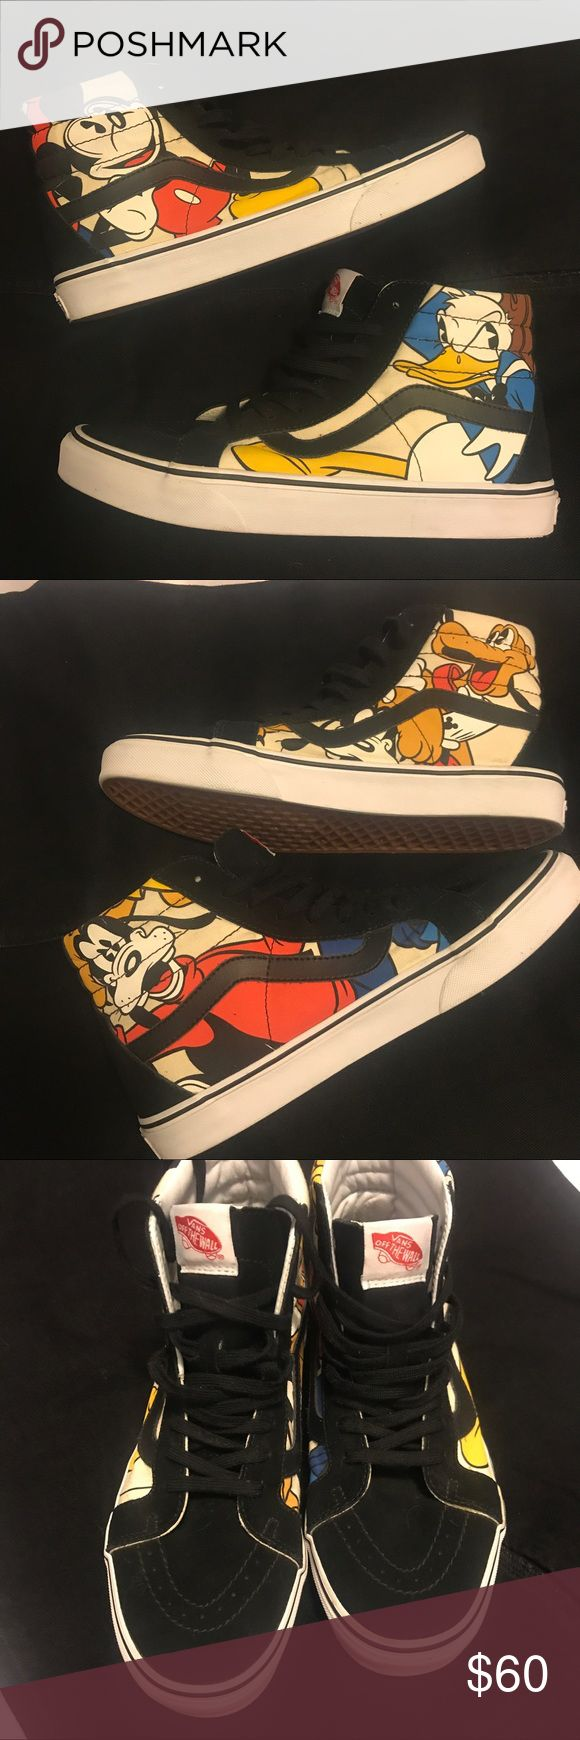 Disney limited edition Vans 4 different characters Disney Vans with 4 characters Mickey Mouse, Donald Duck, Pluto and Goofy men's size 9 woman size 10.5 there are limited edition and in brand new condition only used a couple of times they are a pretty awsome statement piece ! Vans Shoes Sneakers